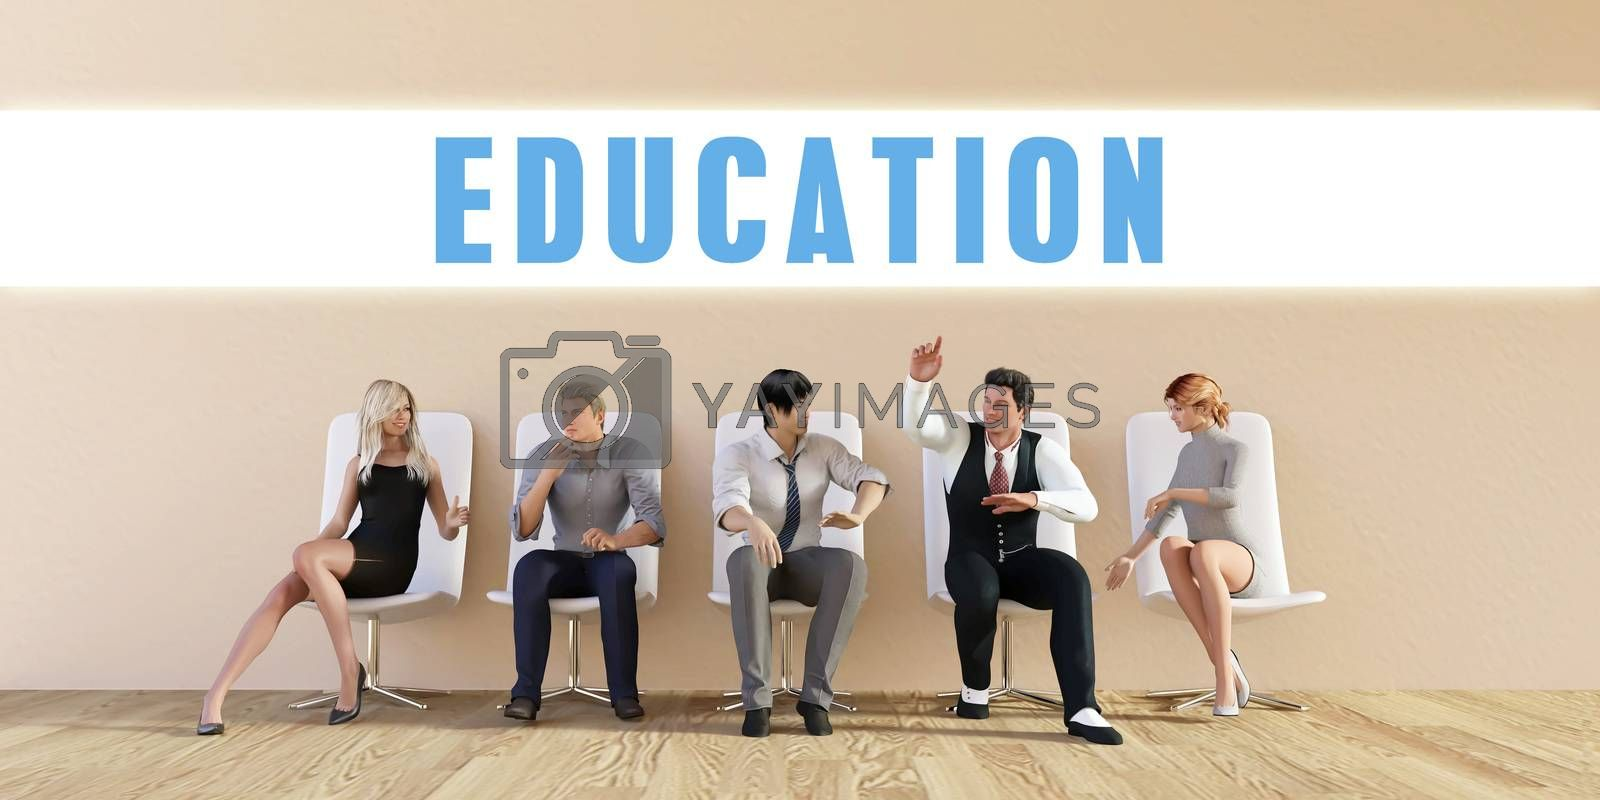 Business Education by kentoh